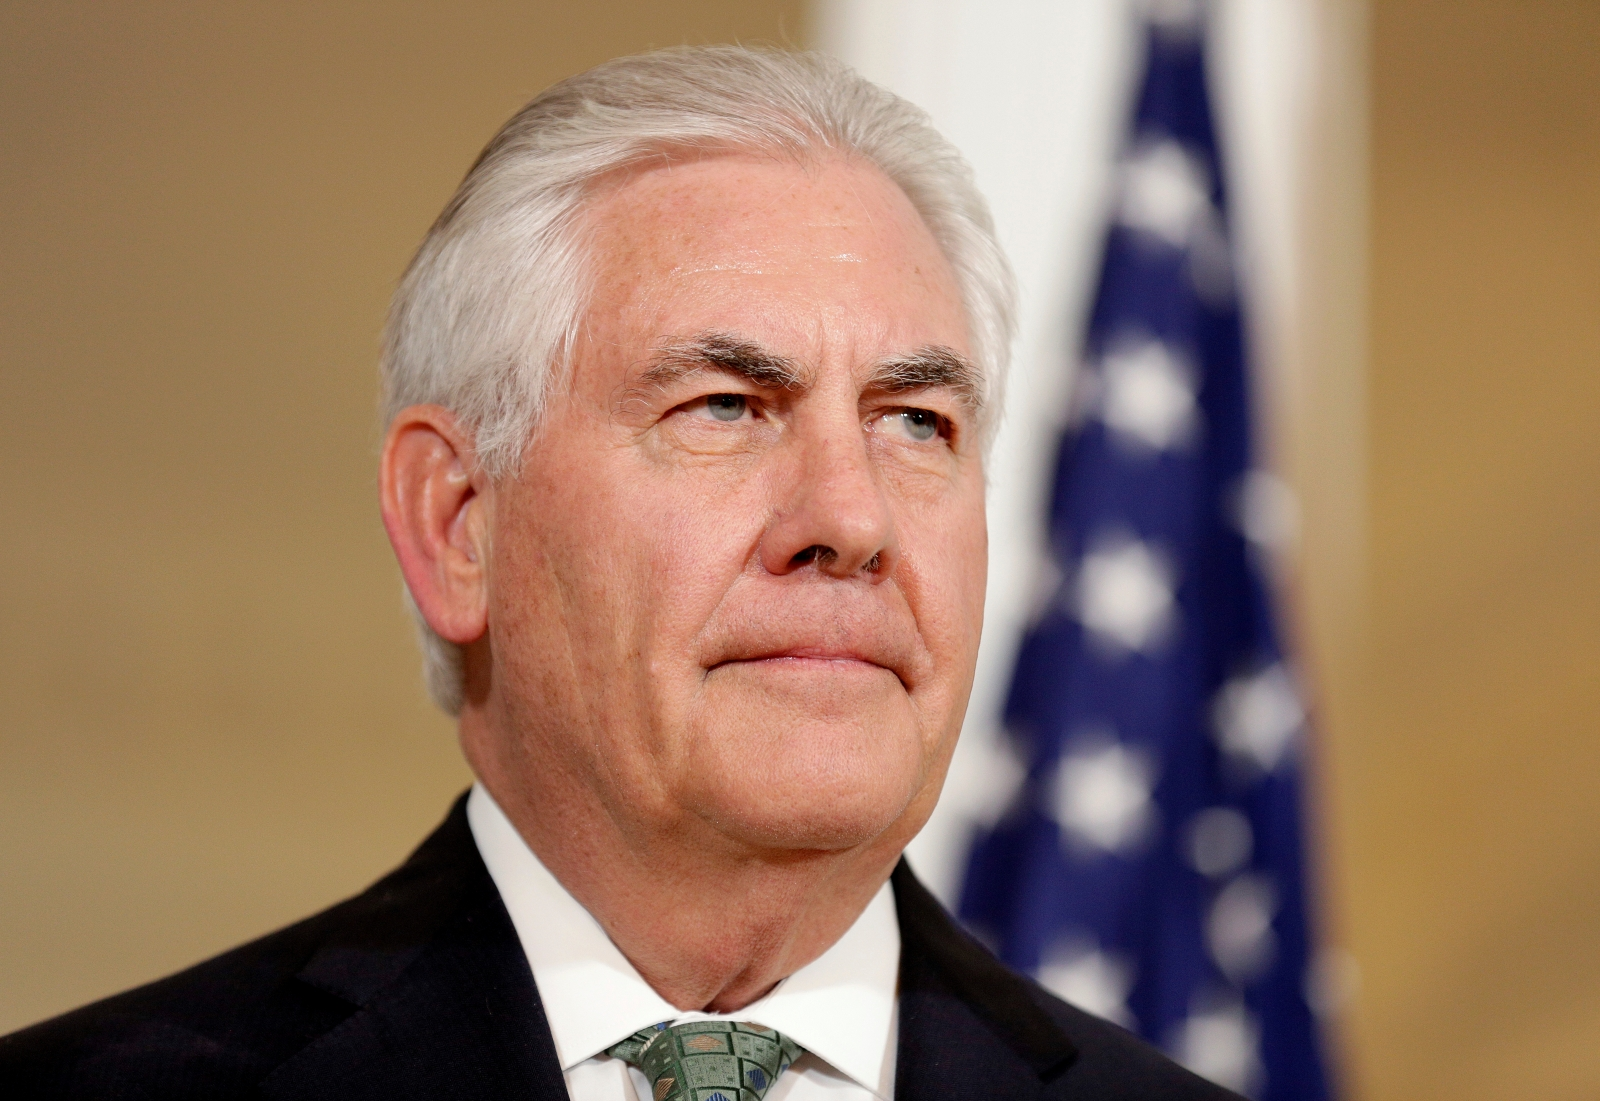 Rex Tillerson at the State Department